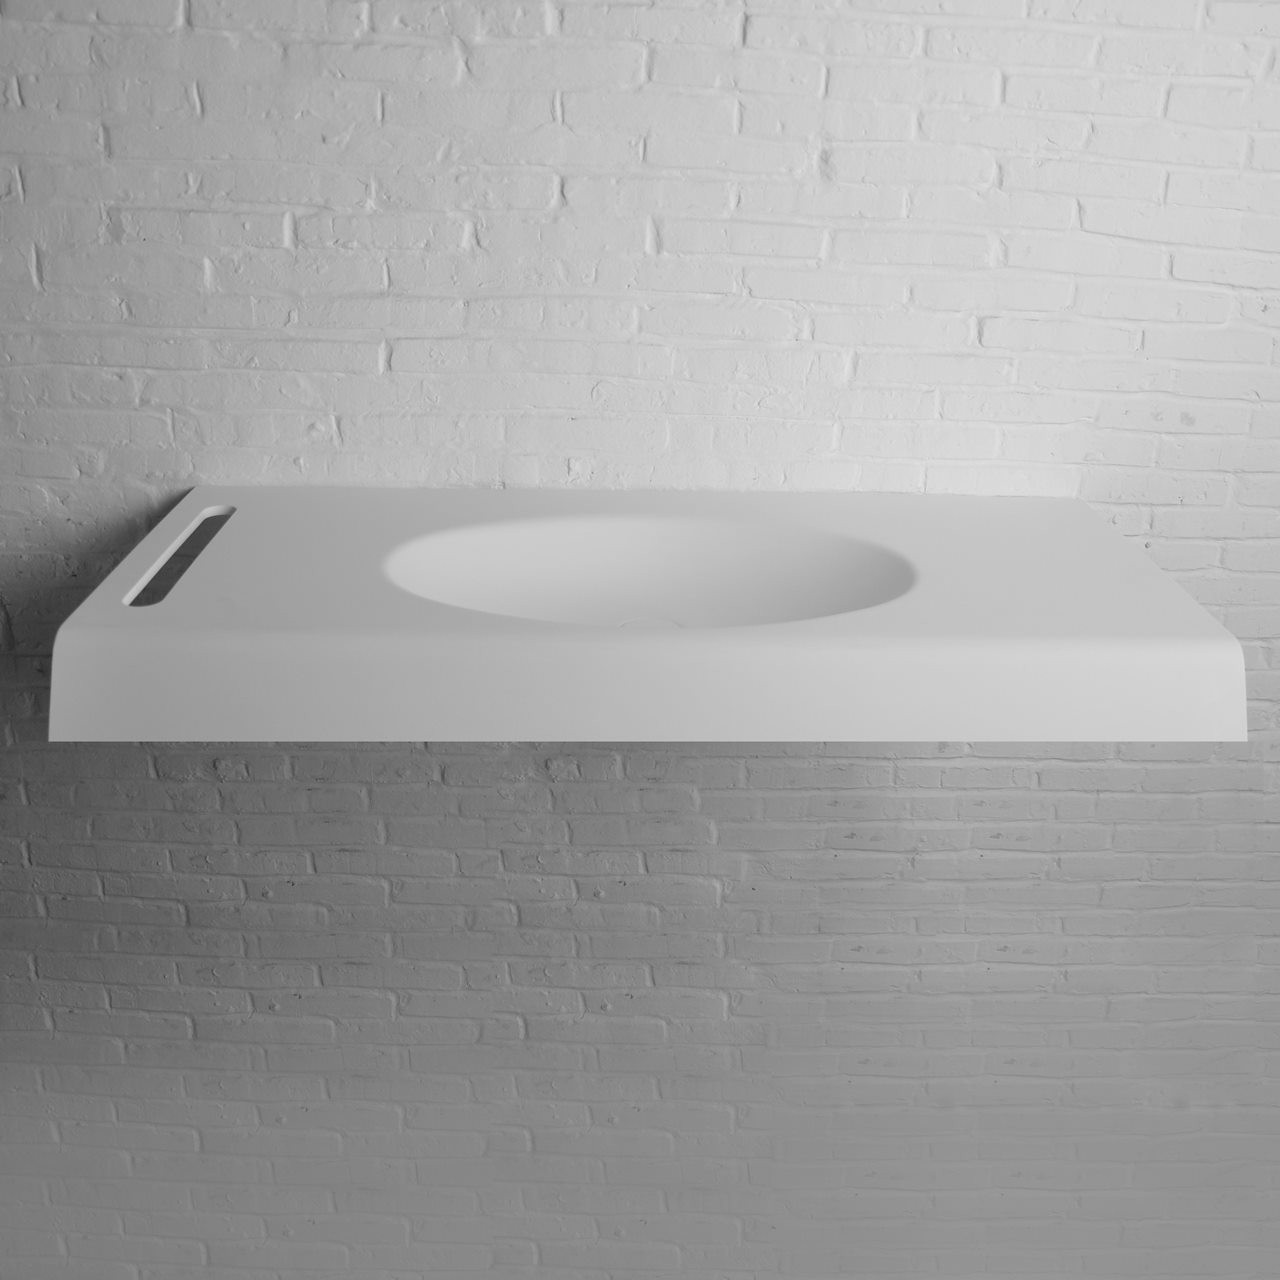 130-281621 SolidWAVE washbasin 1200x550x100mm-1